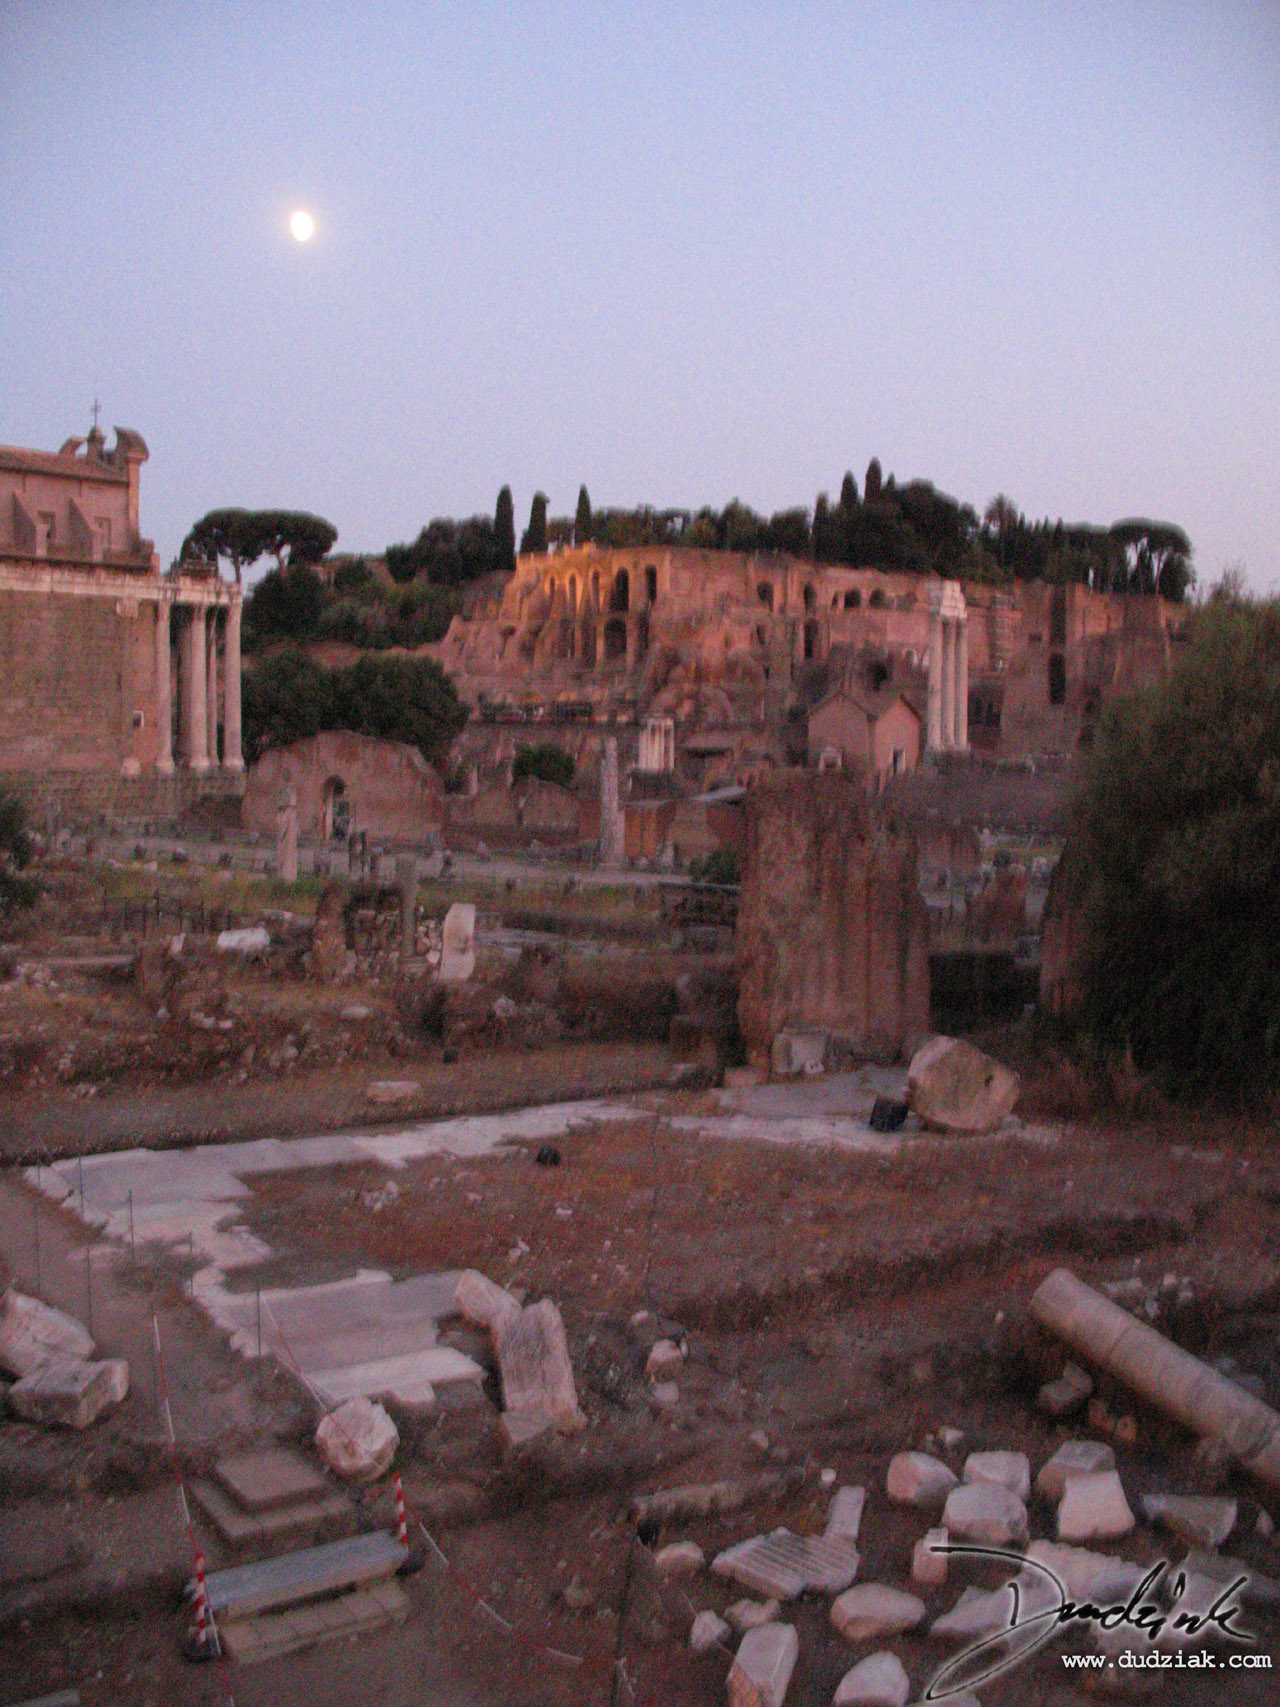 italy,  roman forum,  dusk,  moonlight,  rome